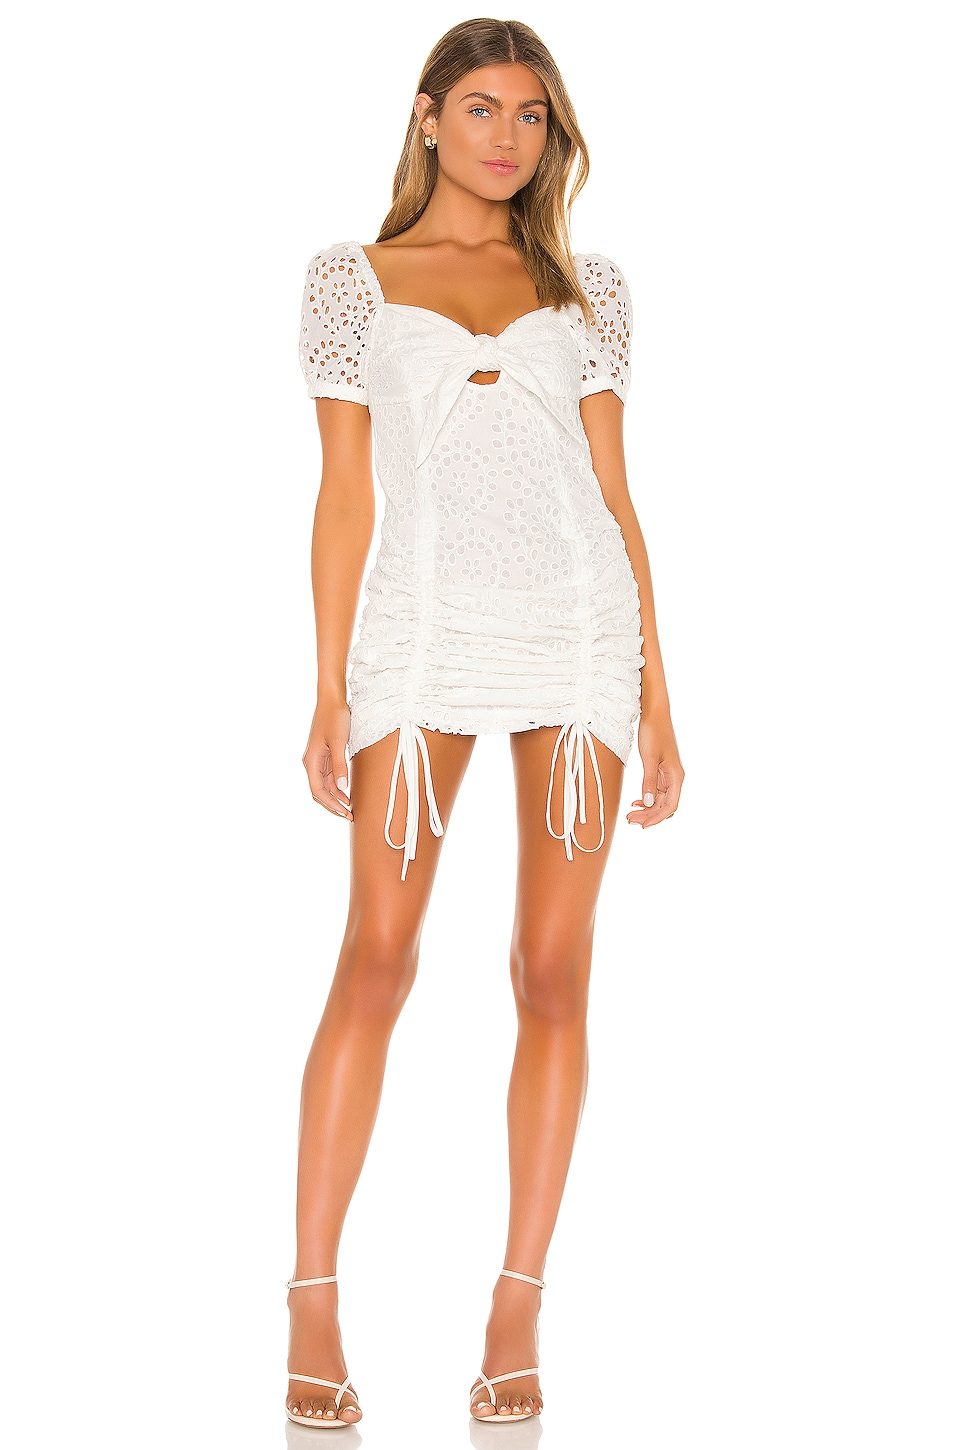 Travel Front Tie Dress             KENDALL + KYLIE                                                                                                                                         Sale price:                                                                       CA$ 75.83                                                                  Previous price:                                                                       CA$ 139.02 2